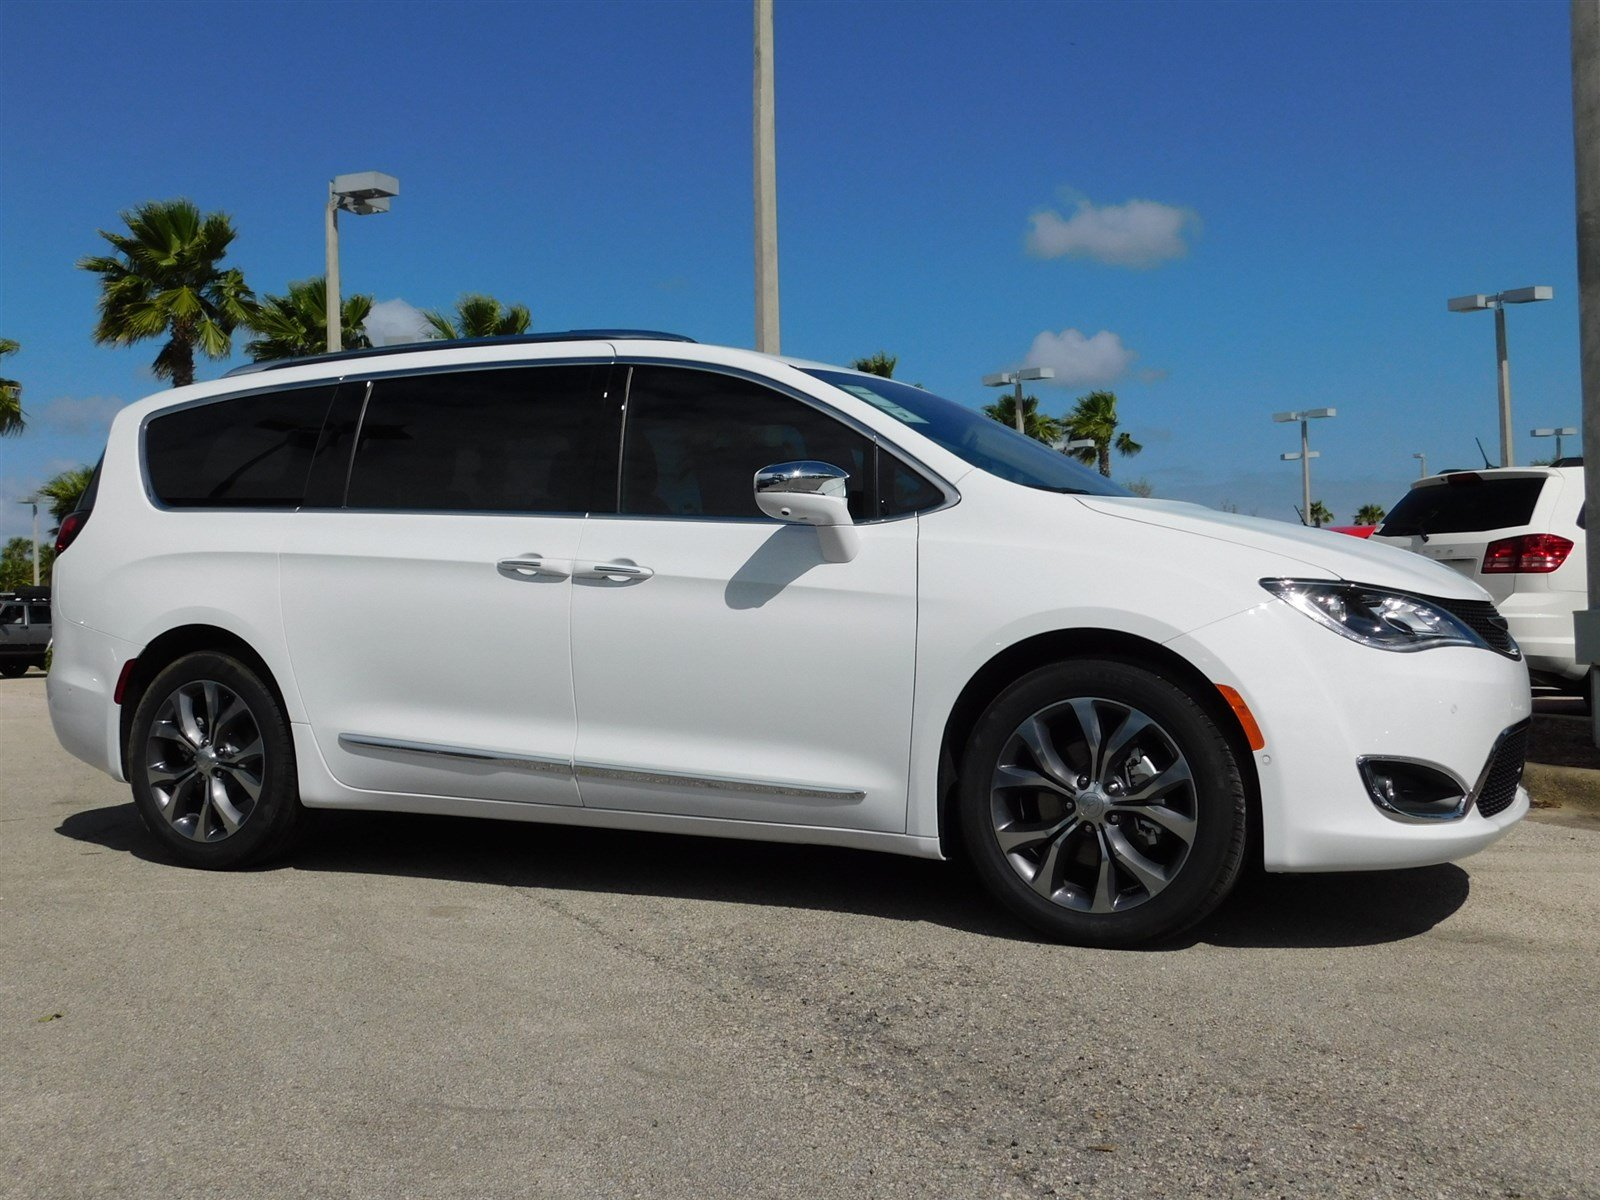 new 2017 chrysler pacifica limited passenger van in daytona beach c17133 daytona dodge. Black Bedroom Furniture Sets. Home Design Ideas